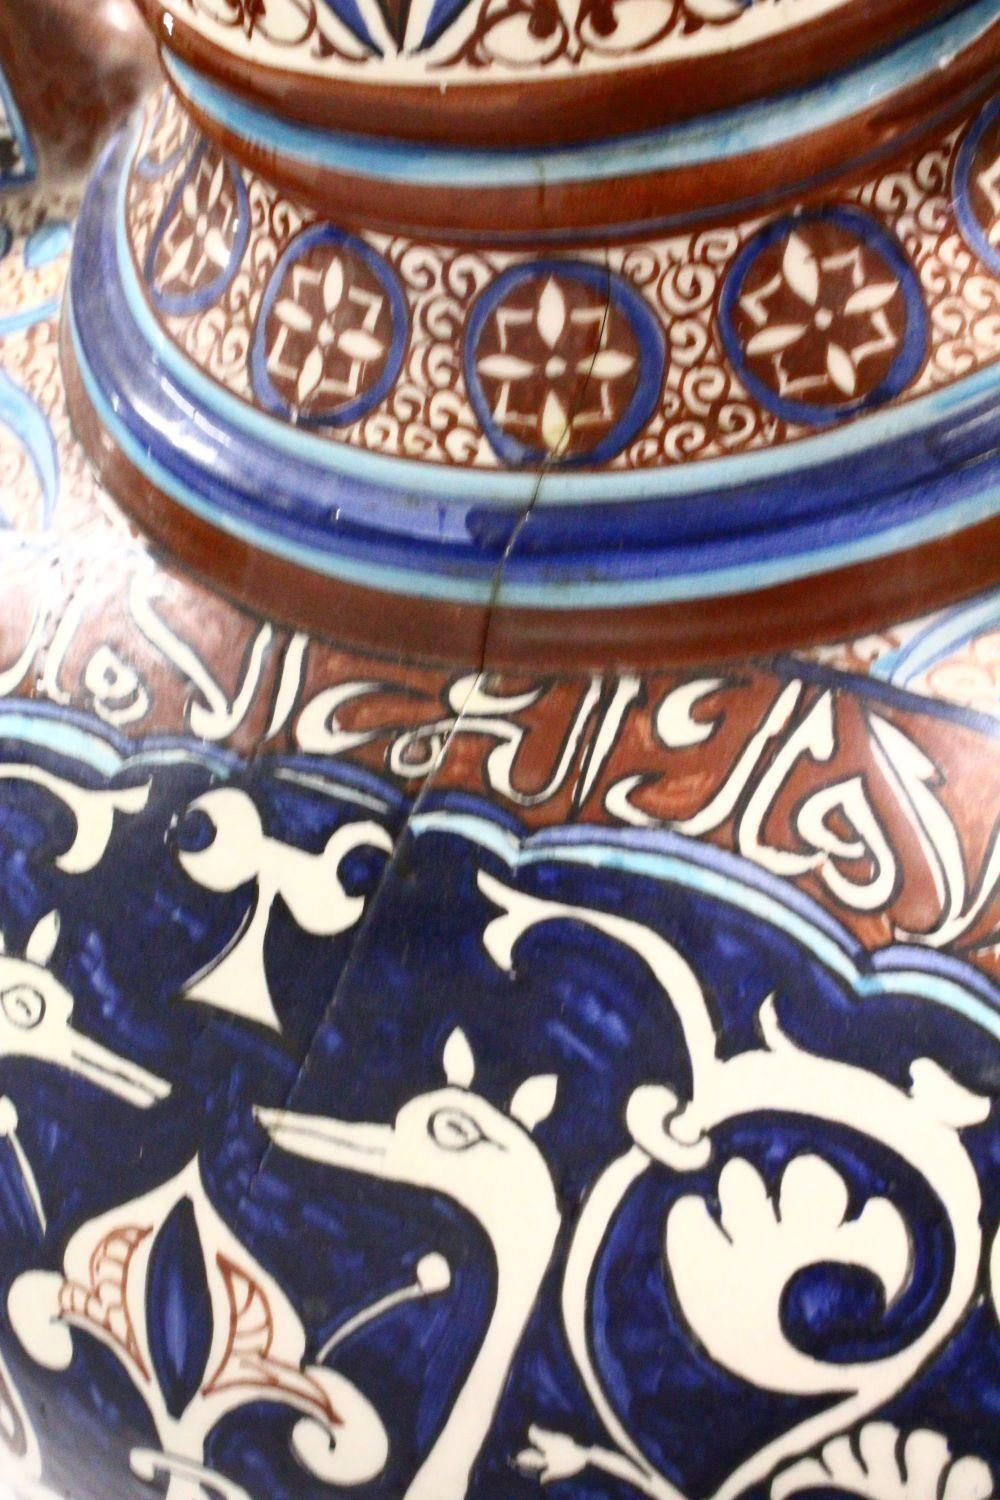 A HUGE 19TH CENTURY ISLAMIC HISPANO MORESQUE POTTERY ALHAMBRA STYLE POTTERY VASE & STAND, possibly - Image 10 of 10